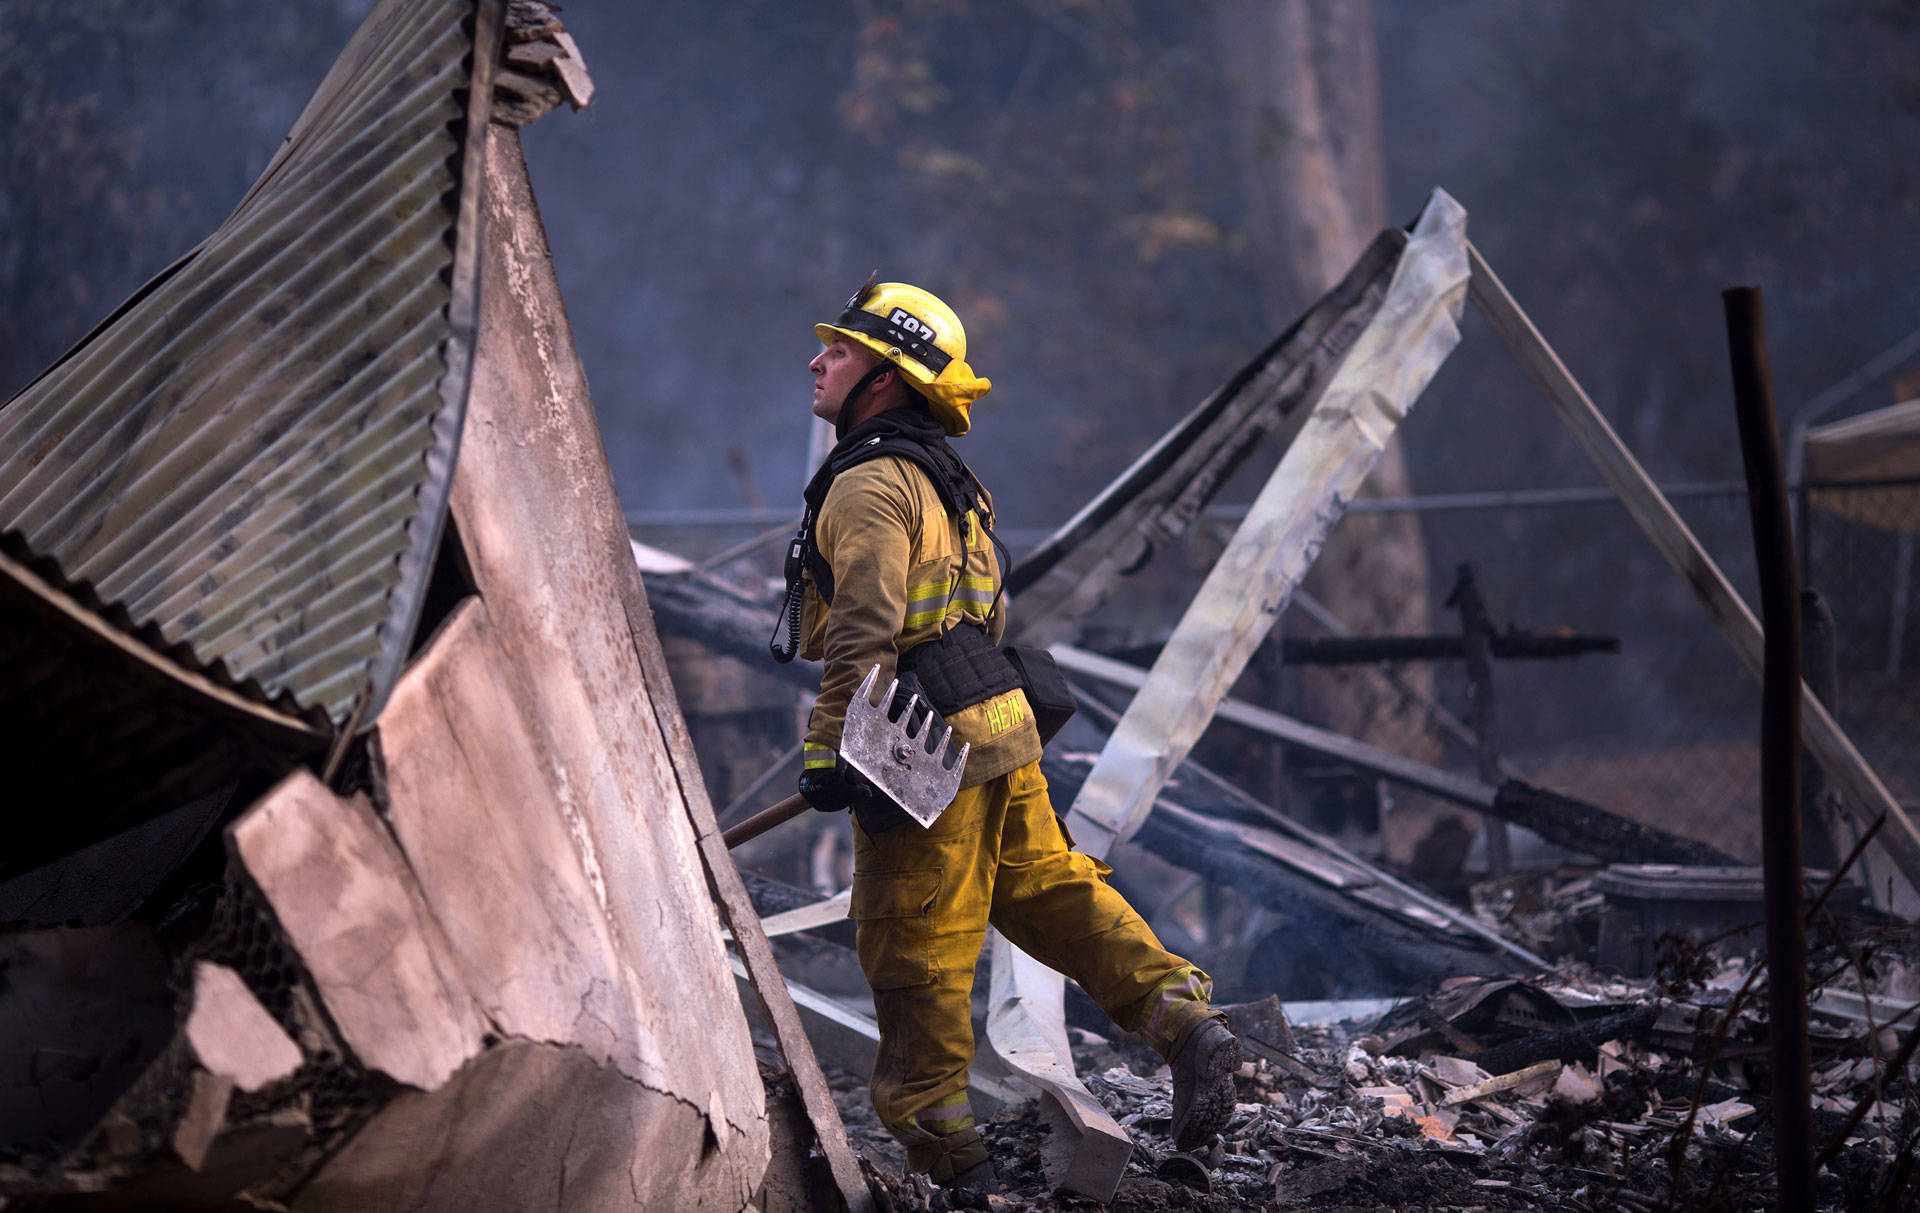 A firefighter looks through the smoldering ruins of a burned house near Casitas Pass Road, as the Thomas Fire continued to grow on Dec. 10, 2017, near Carpinteria.  David McNew/Getty Images